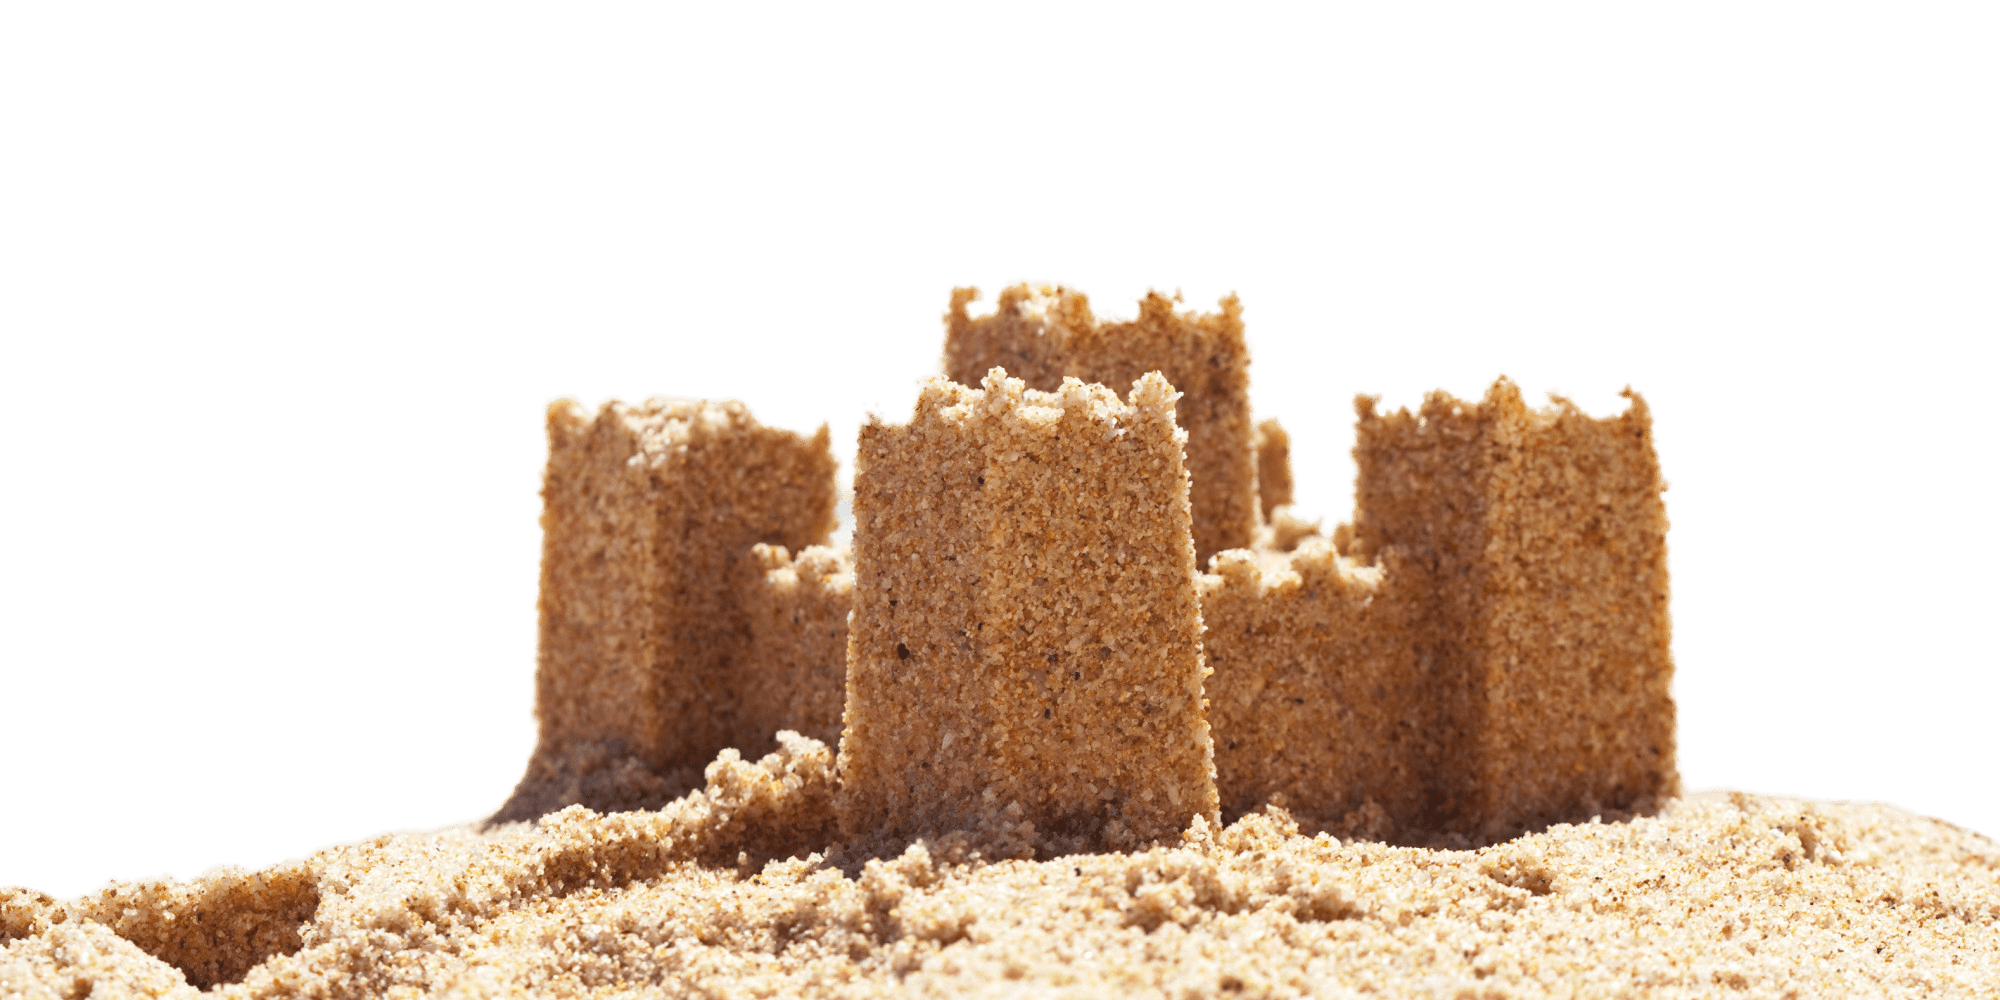 Sand castle png. Four towers transparent stickpng